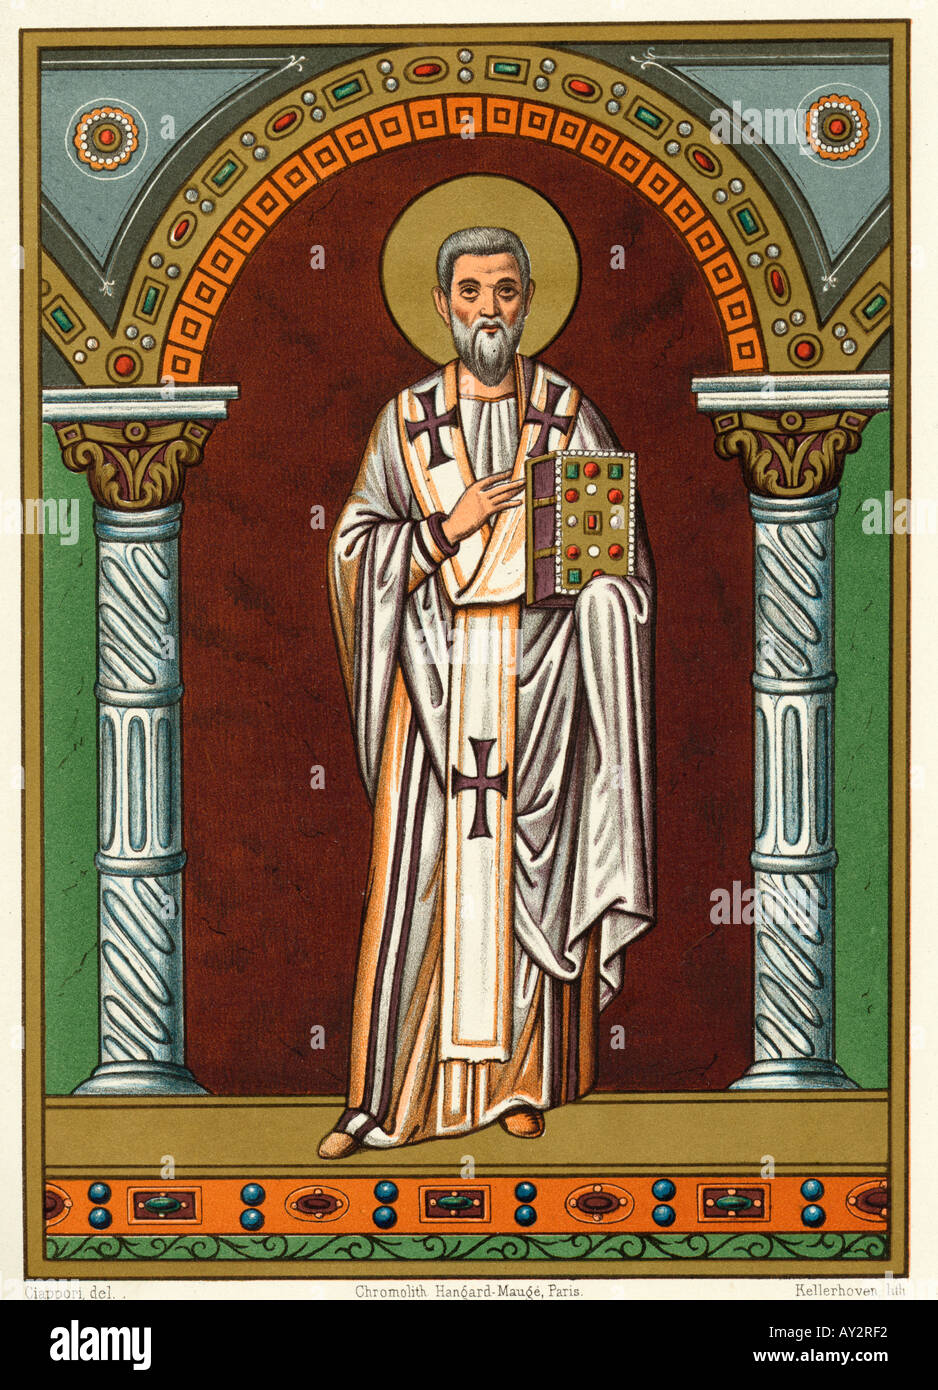 St Gregory Of Nazianzus Stock Photo - Alamy